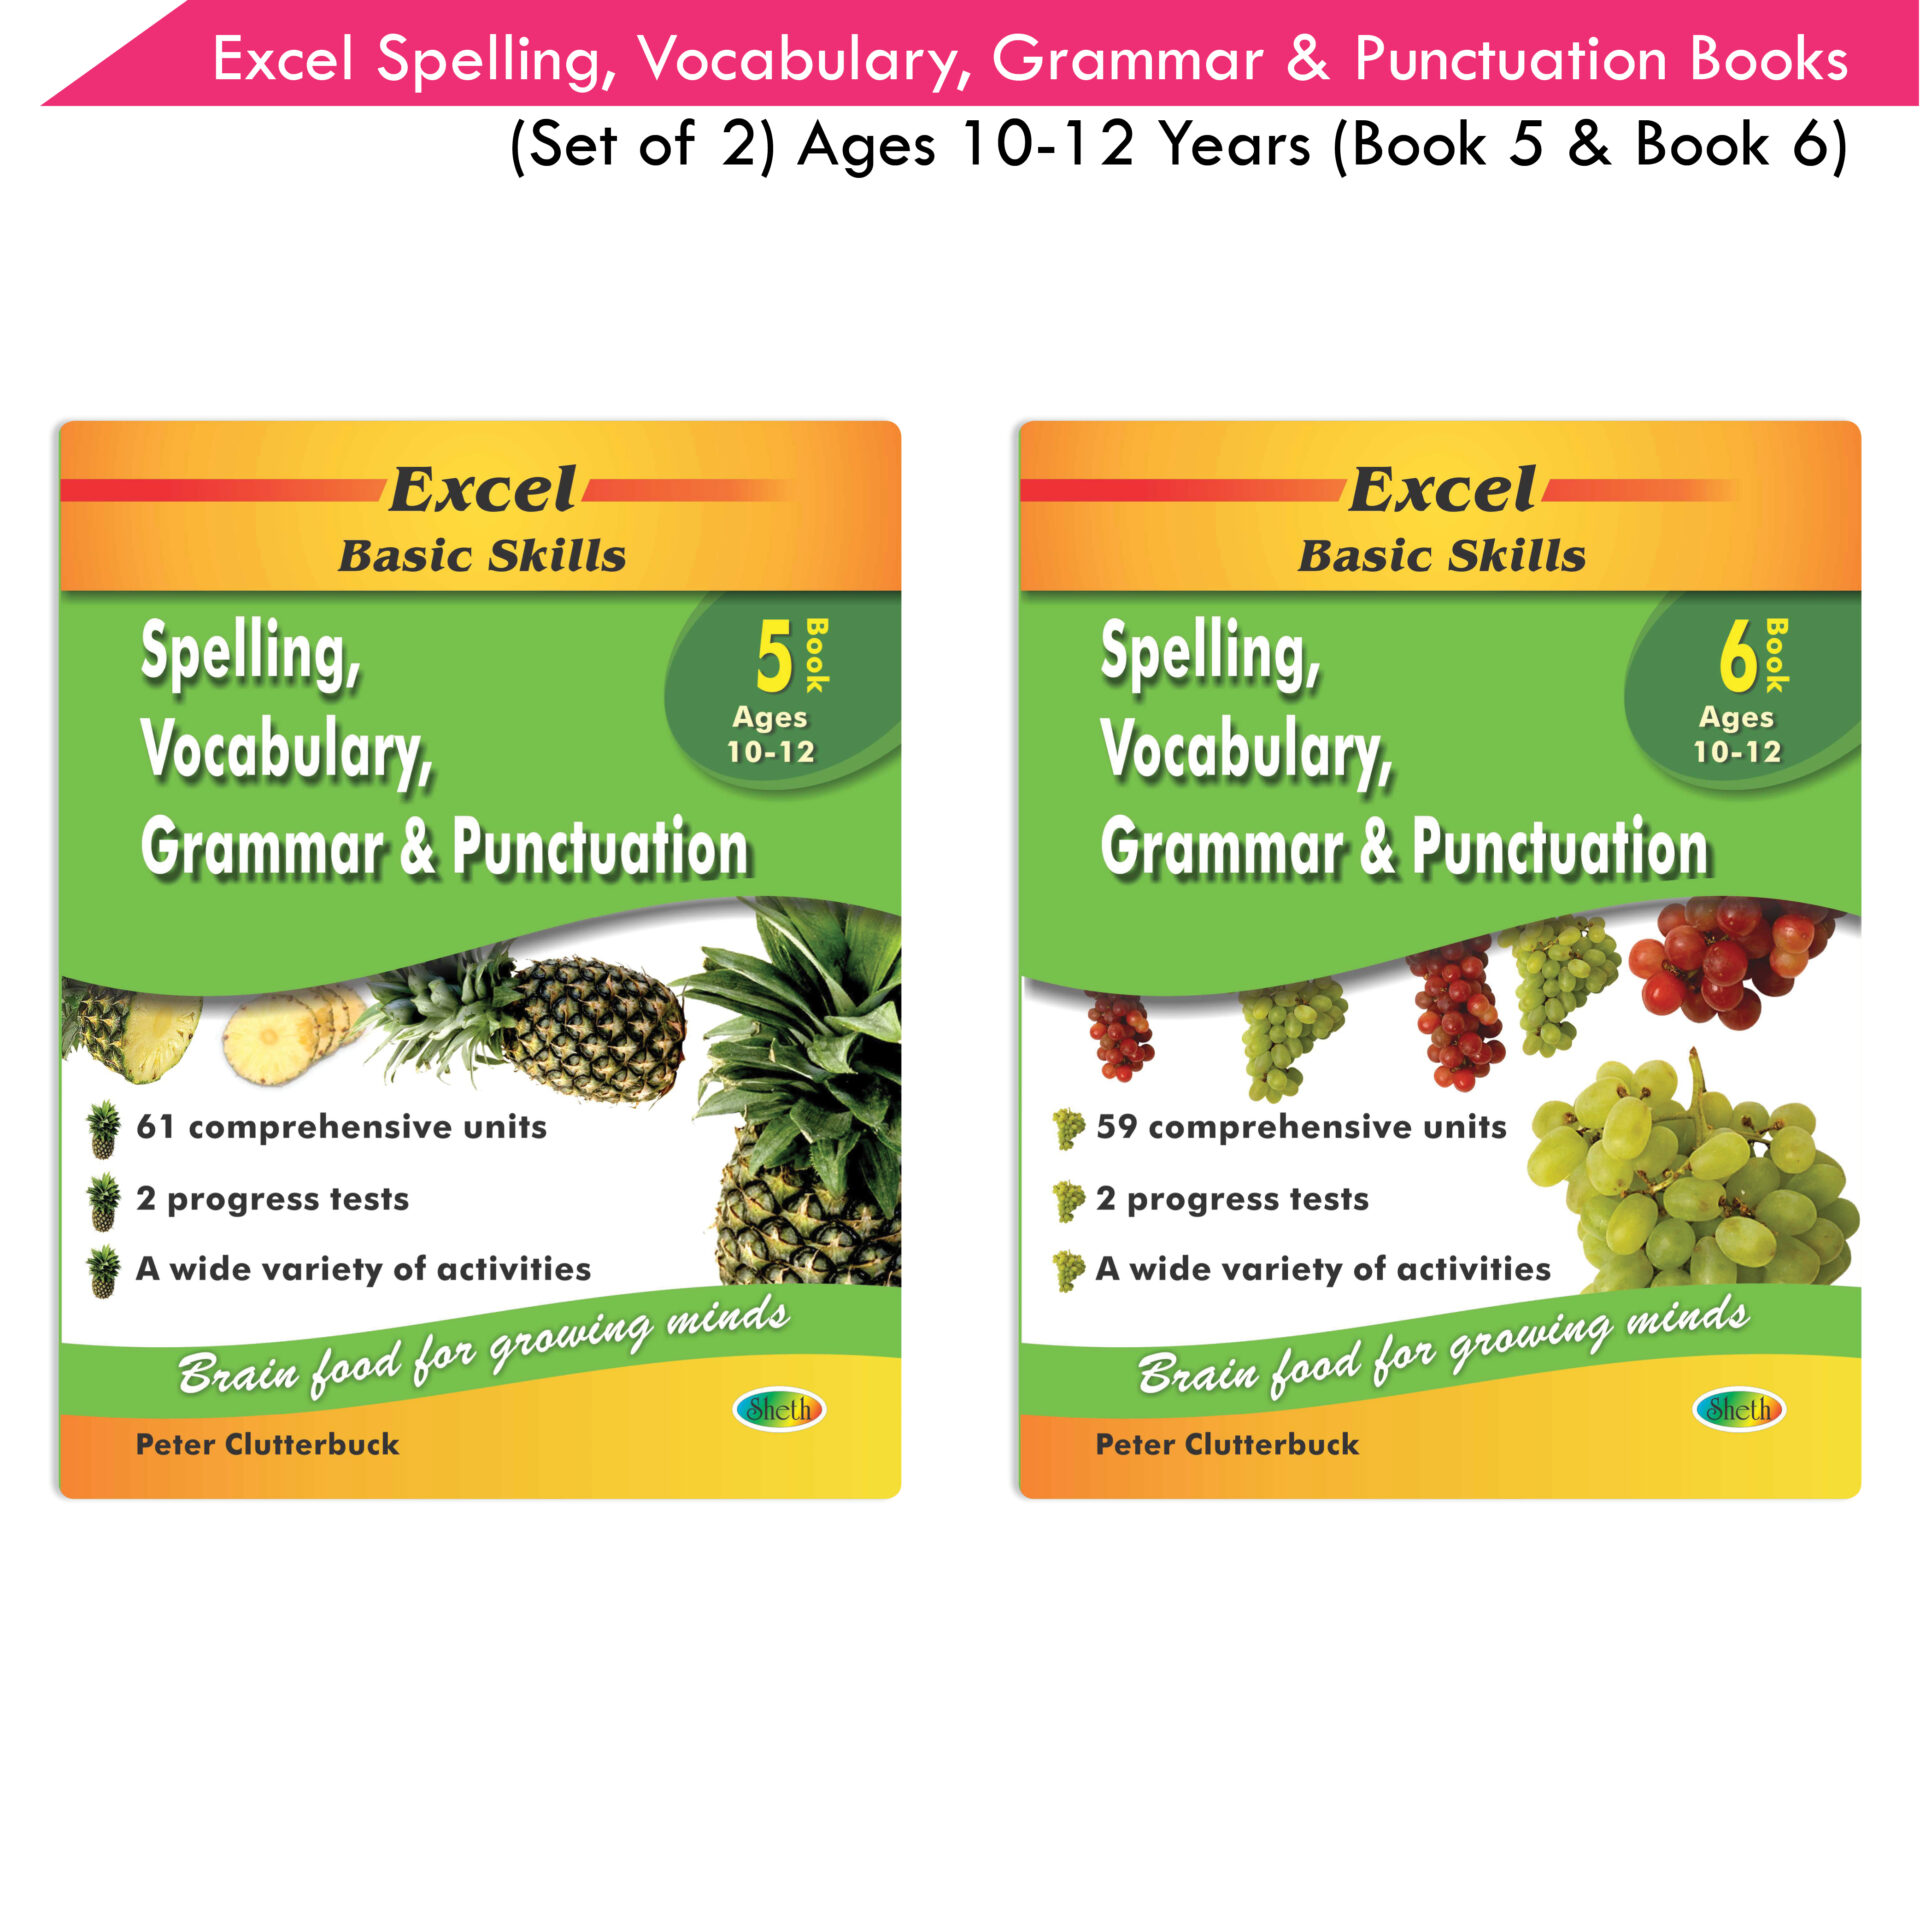 Excel Basic Skills Spelling Vocabulary Grammar and Punctuation Book Set Ages 10 12 Set of 2 1